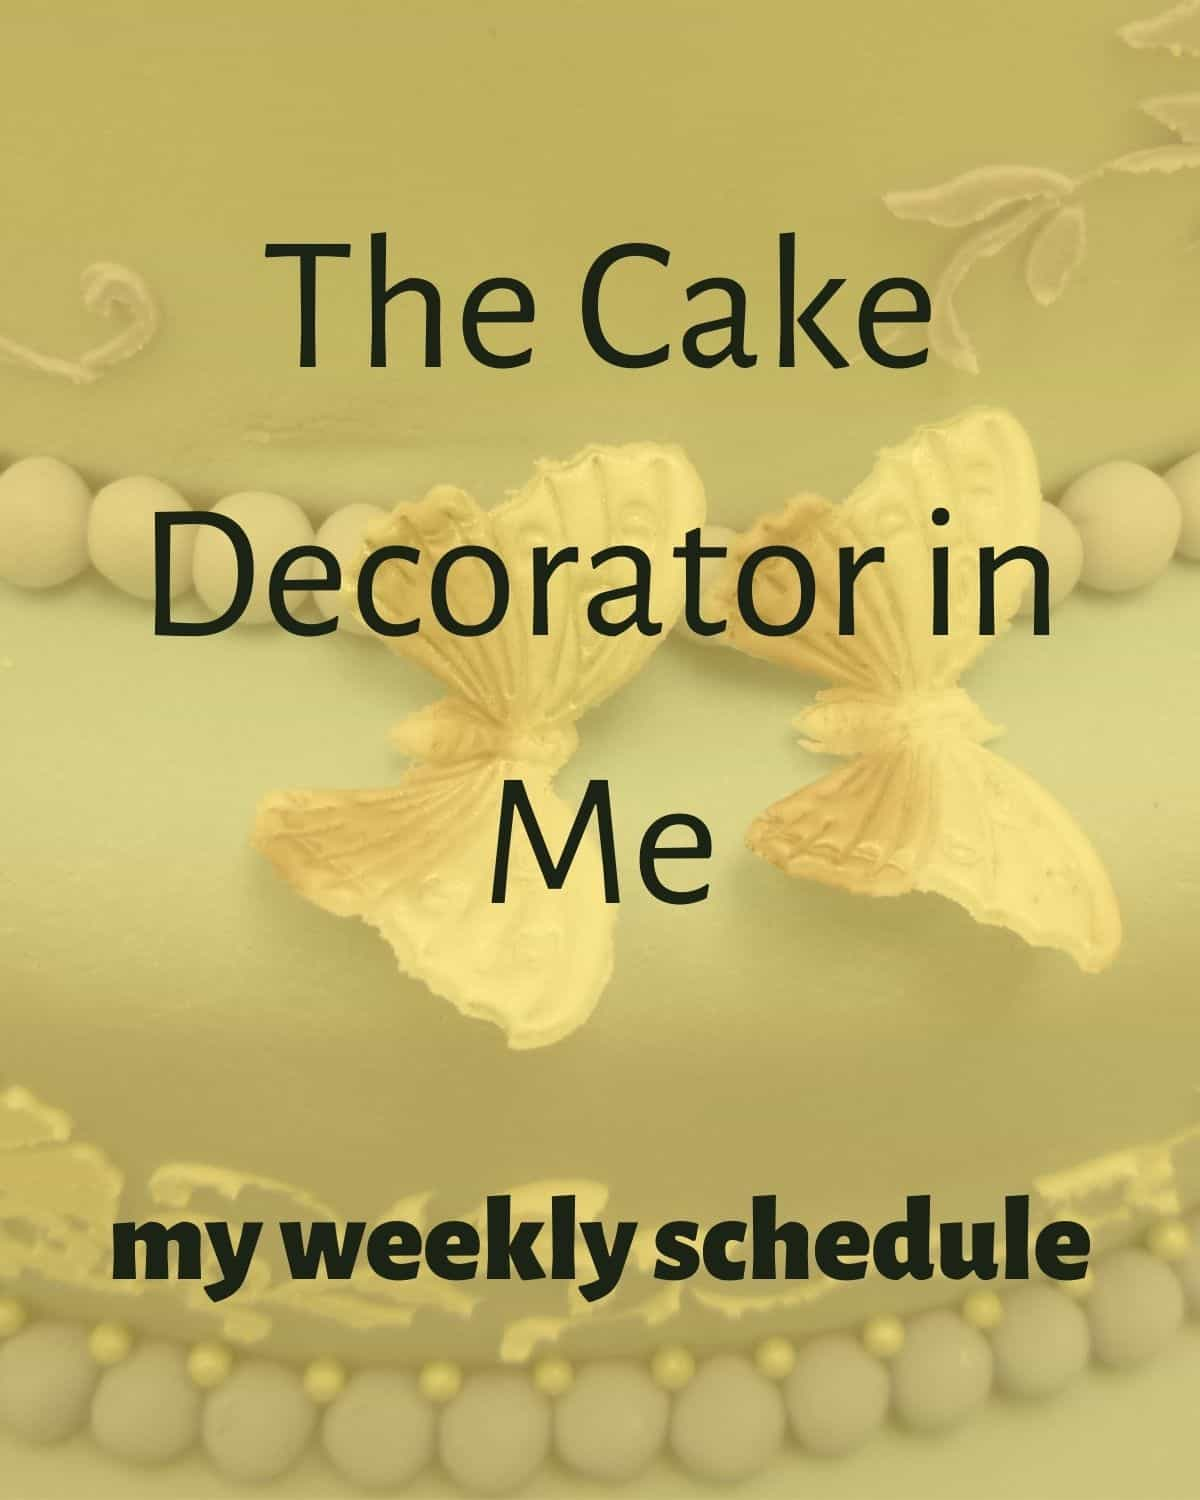 Poster for the weekly schedule of a cake decorator - in yellow